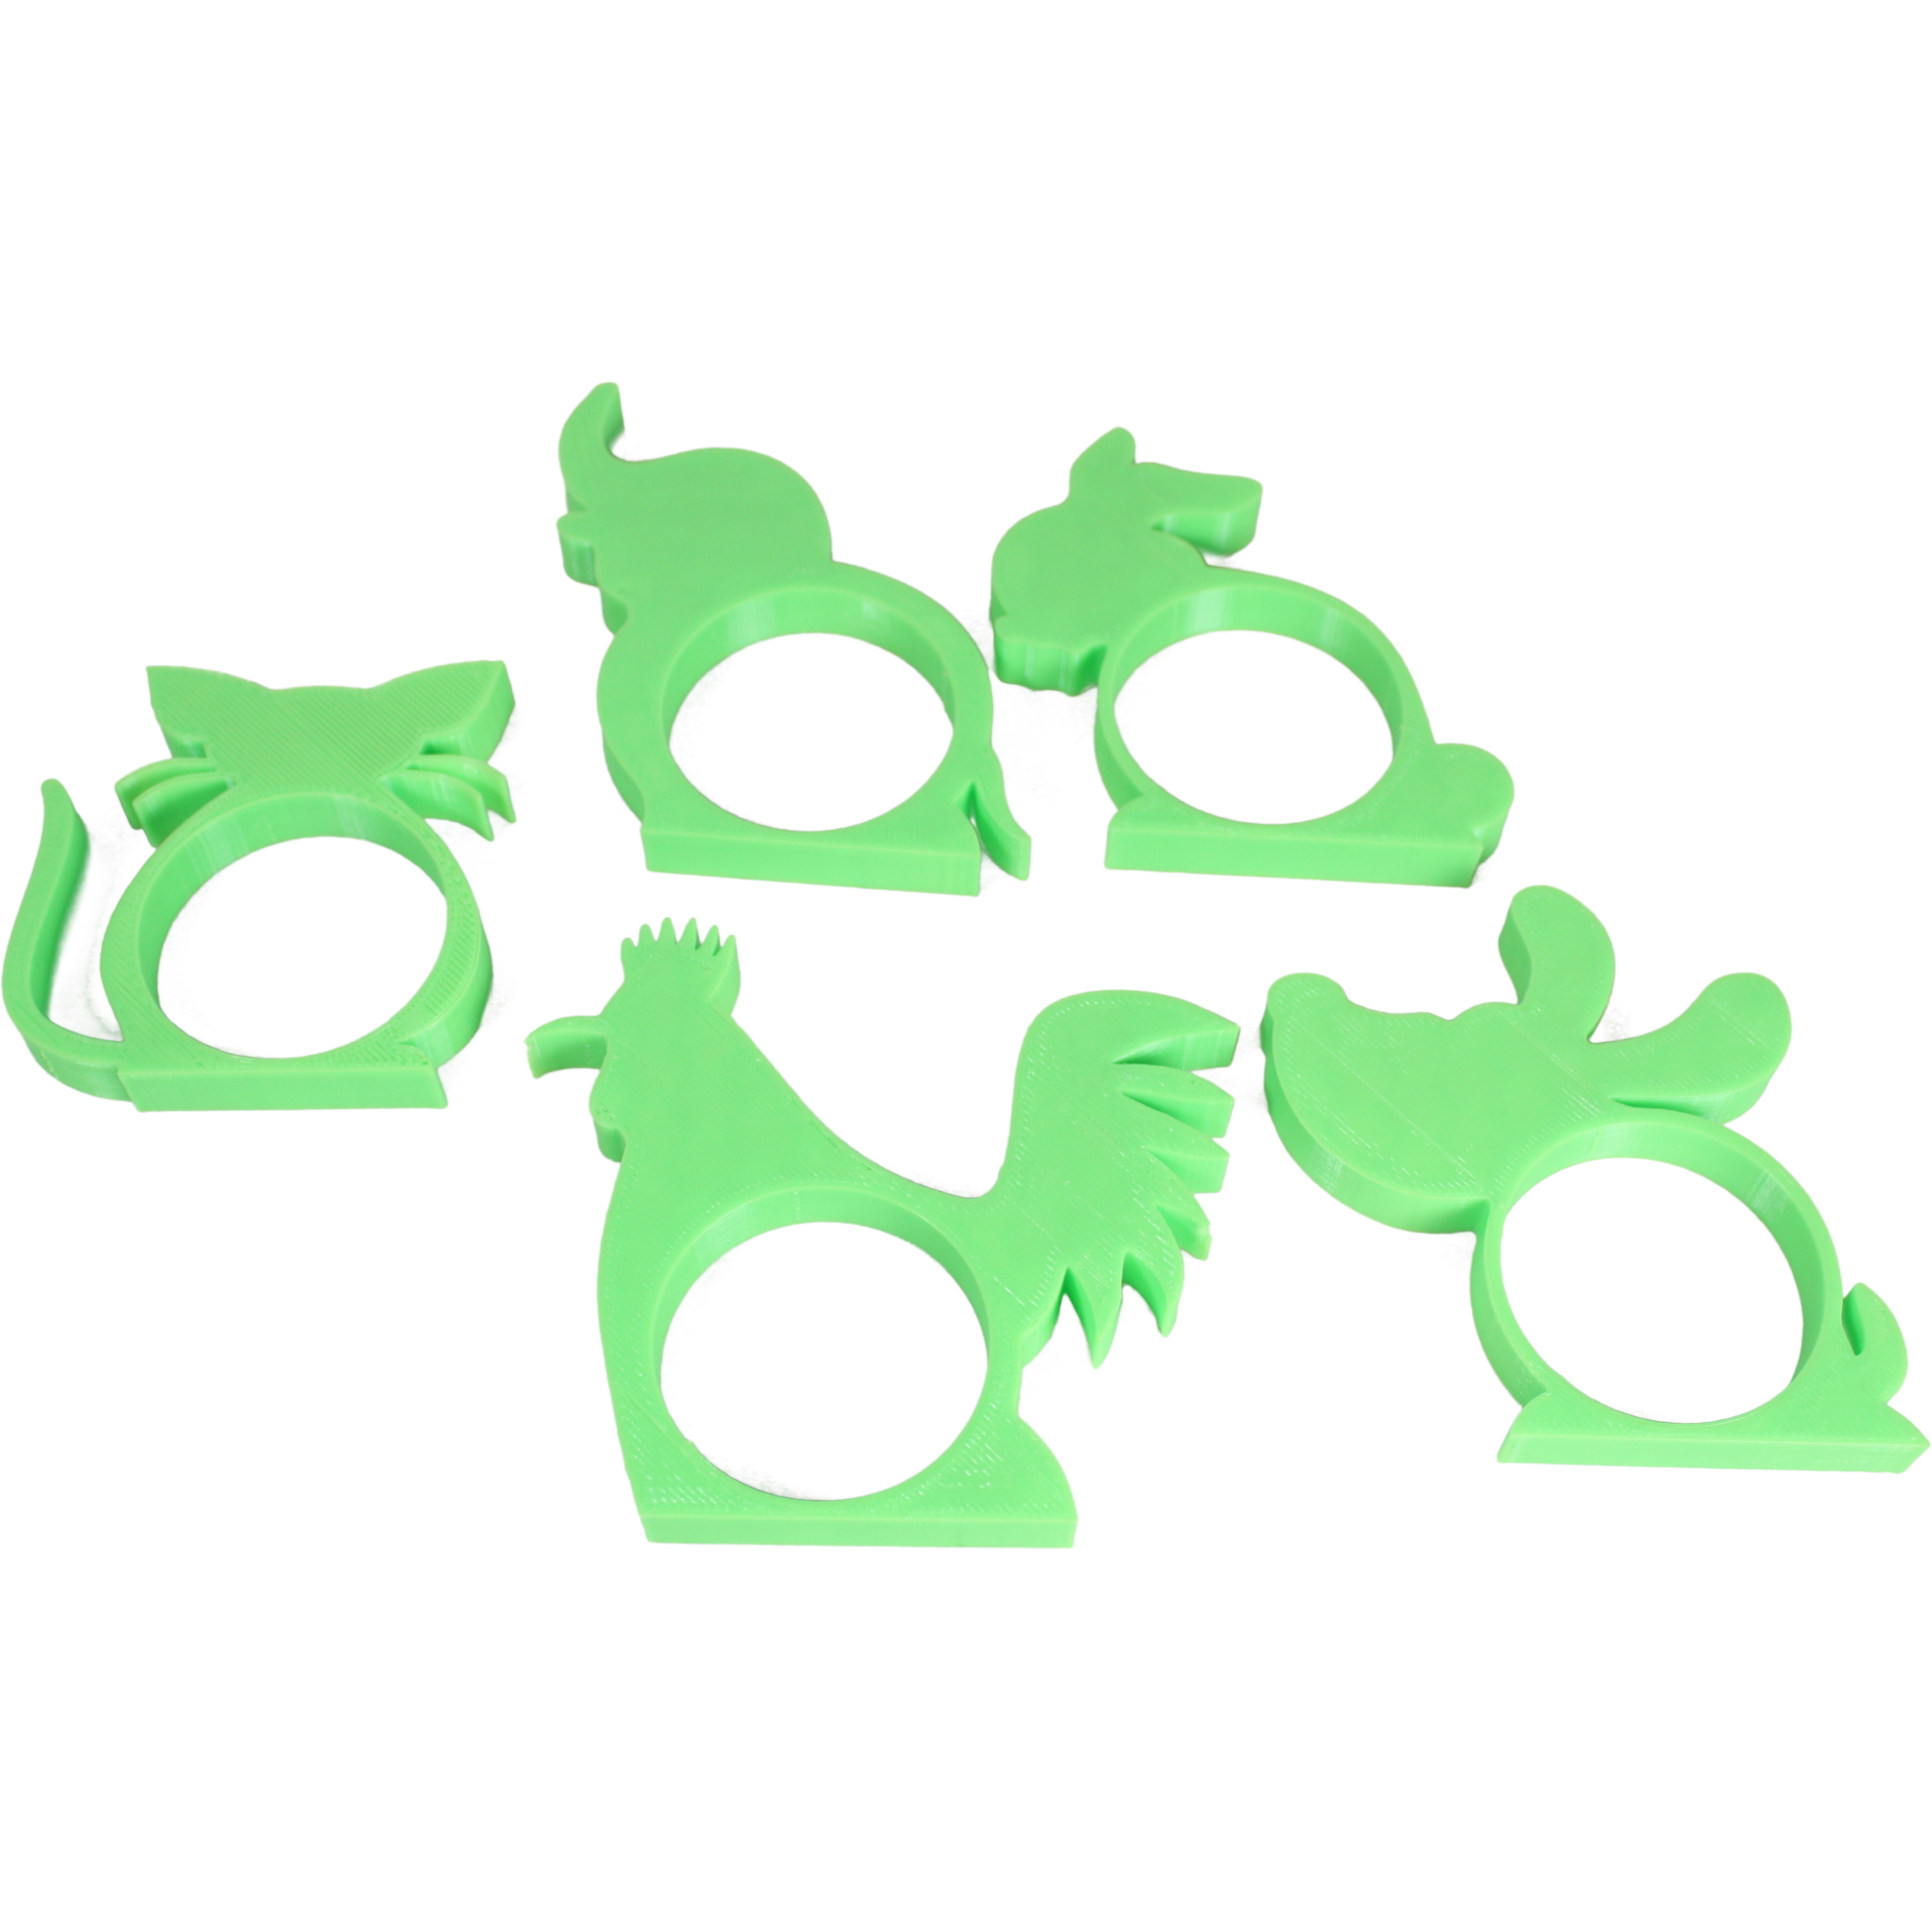 x5 Childrens Animal Shaped Napkin Rings / Holders - Light Green